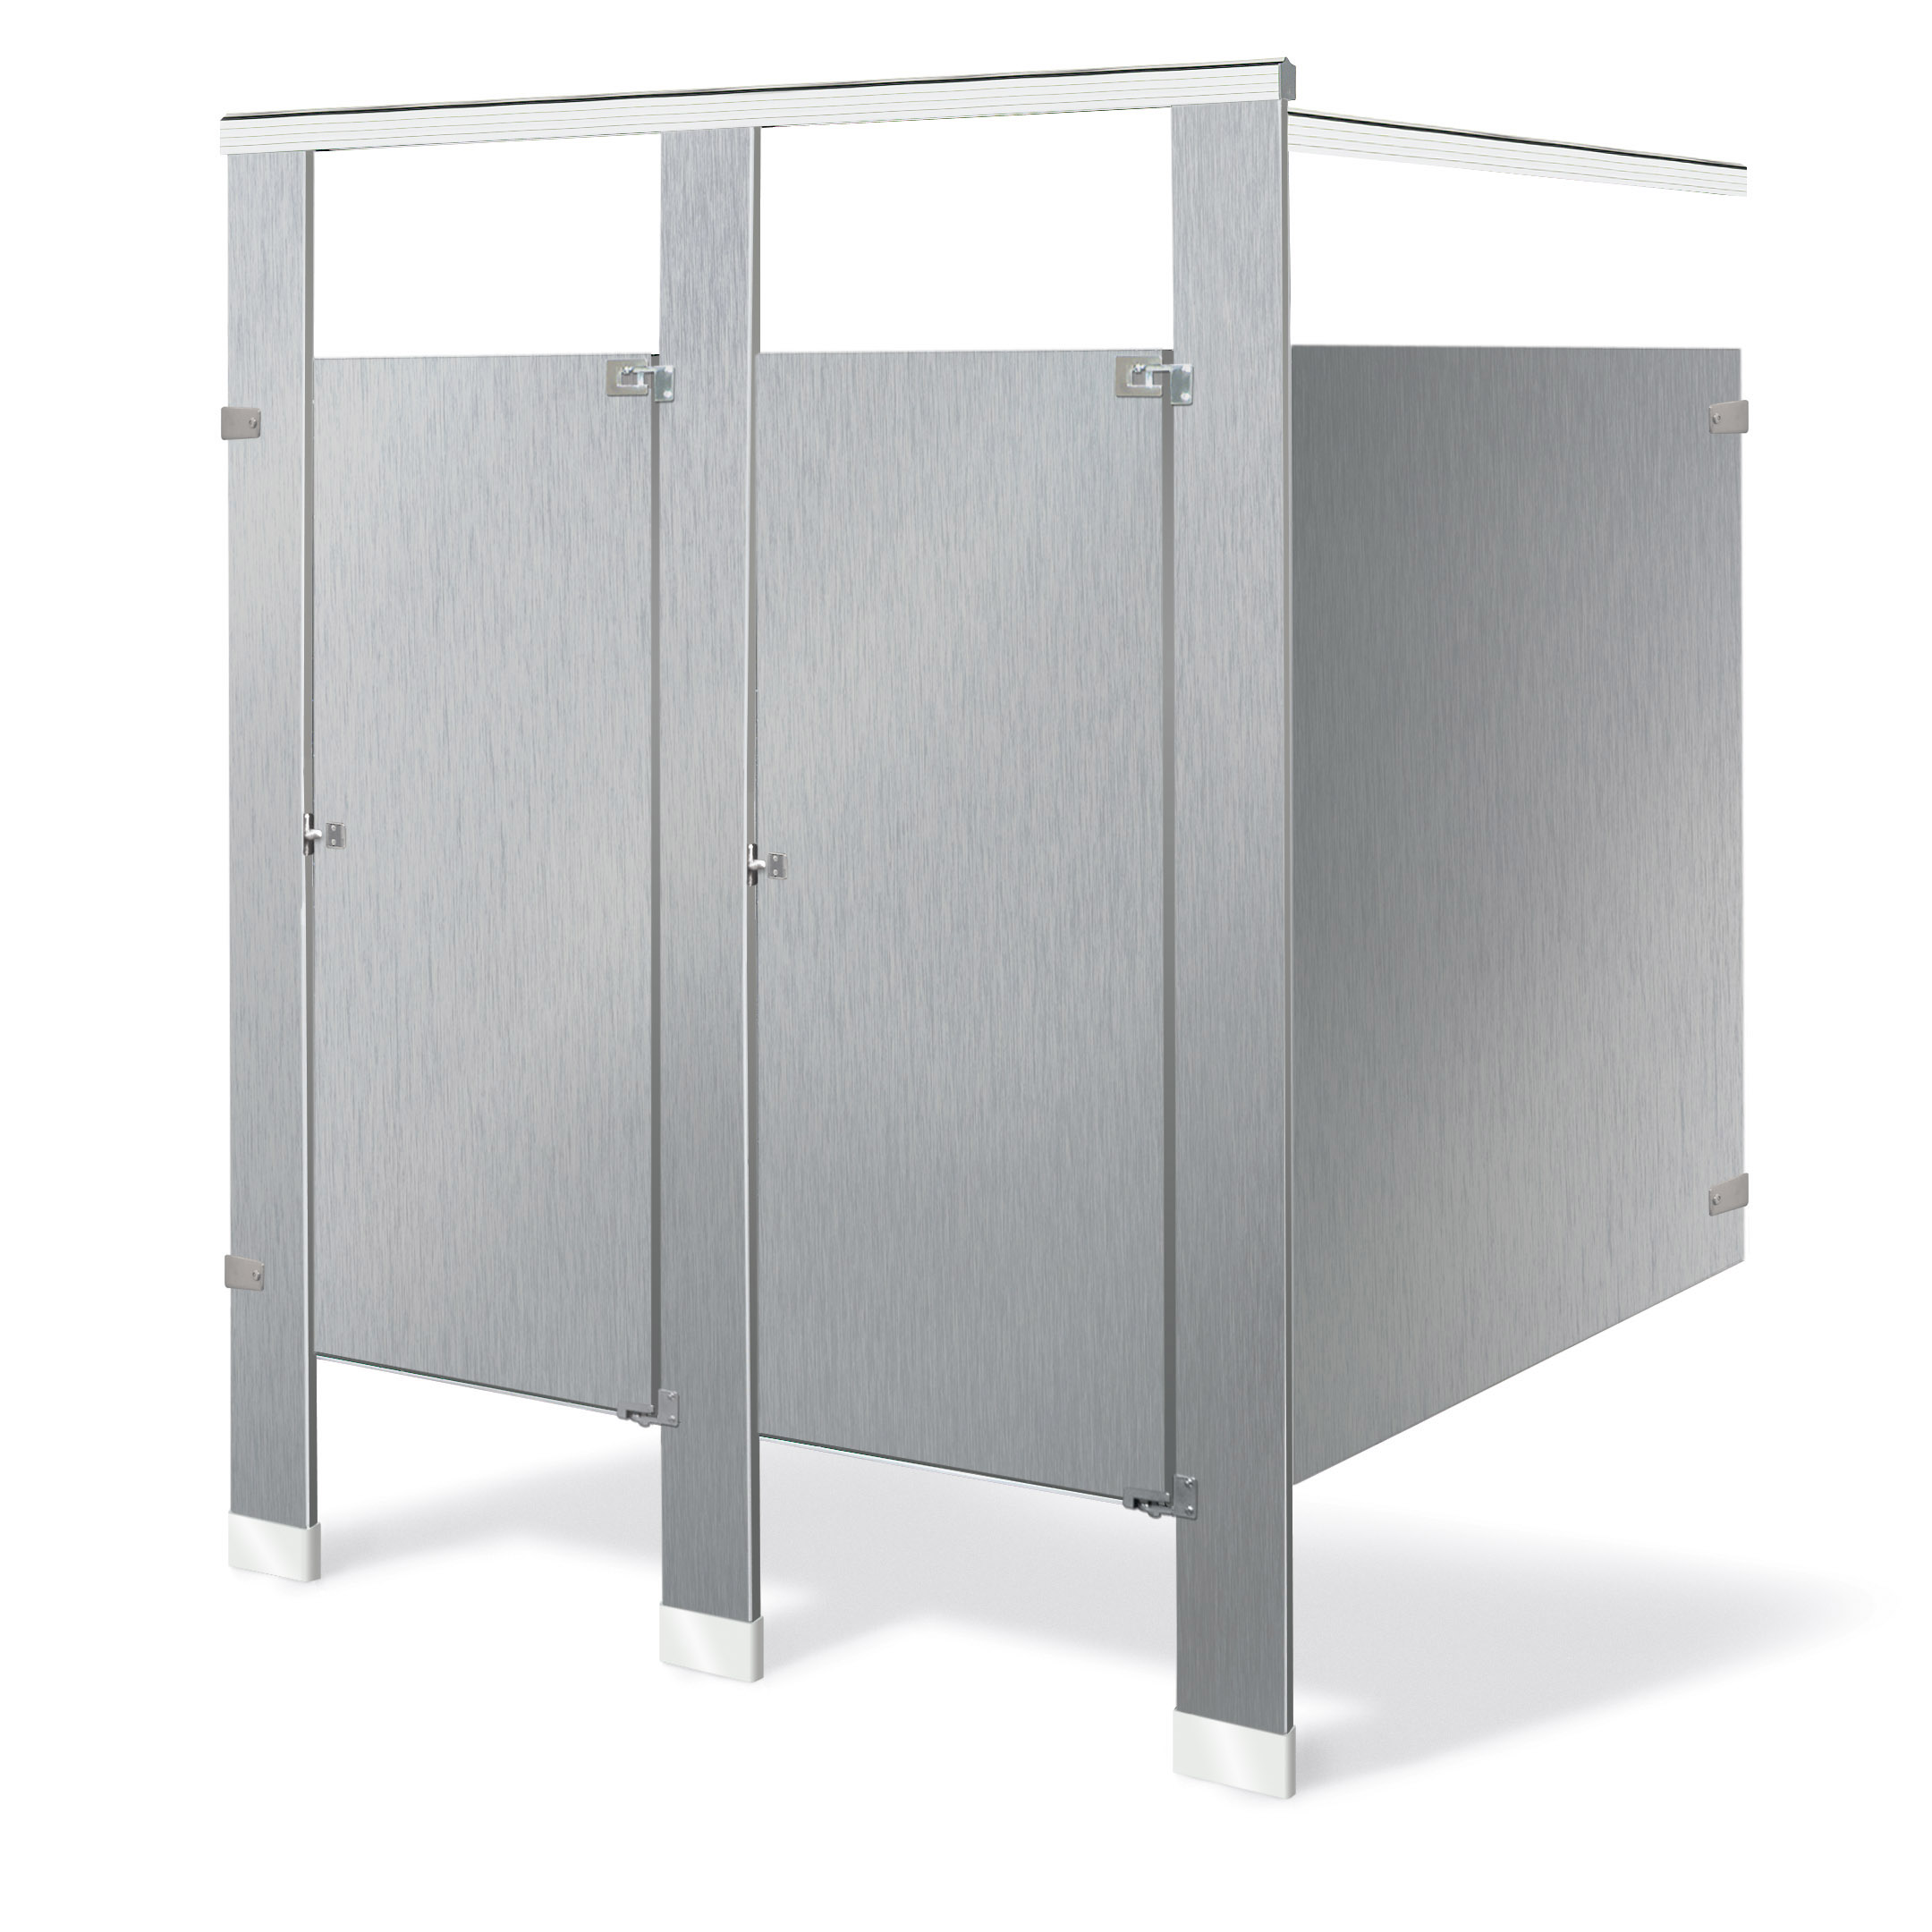 Bradley Mills Stainless Steel Bathroom Partitions - Steel bathroom partitions